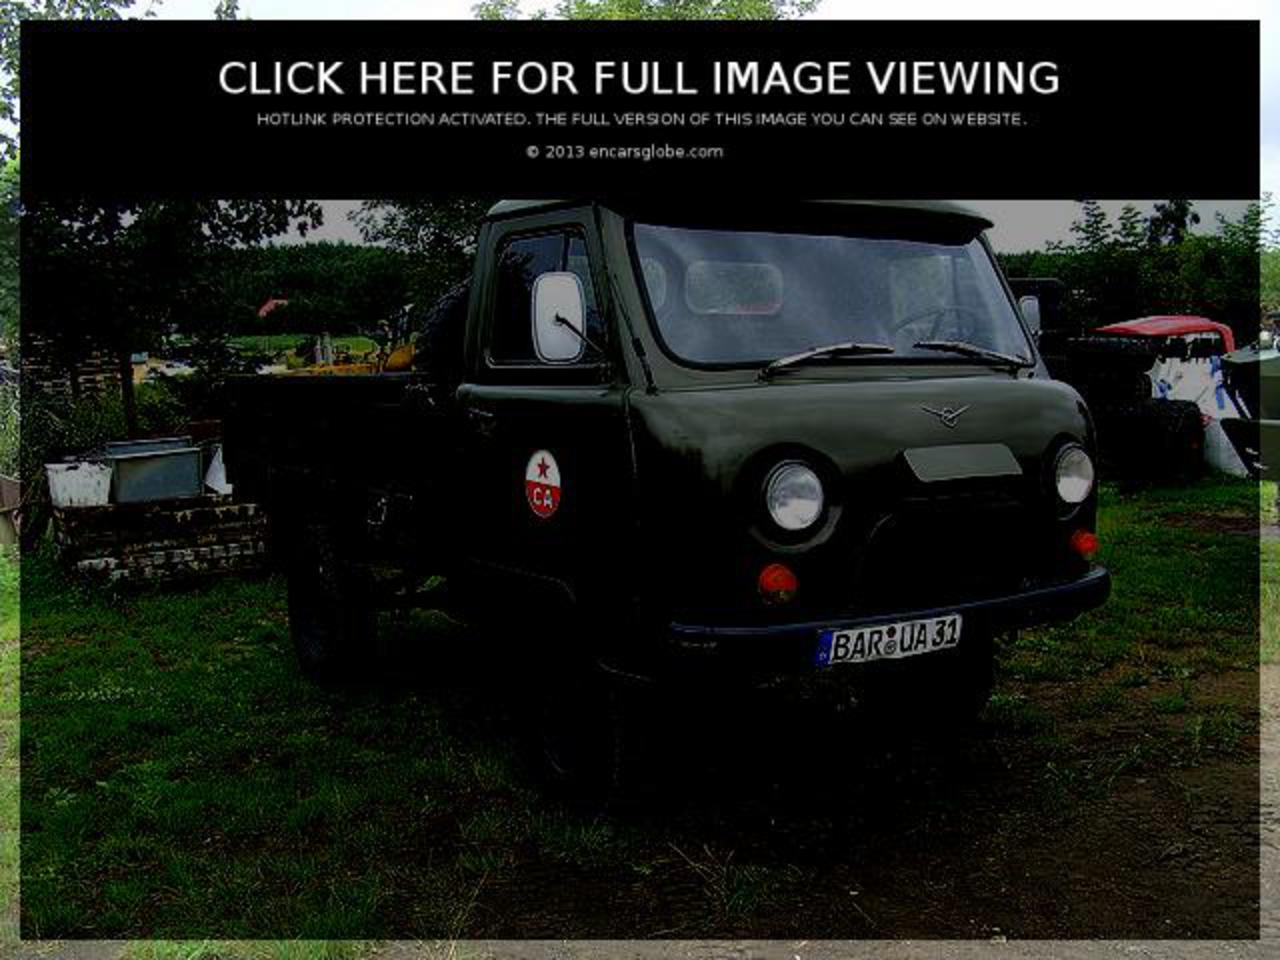 UAZ 489 Photo Gallery: Photo #04 out of 7, Image Size - 500 x 351 px